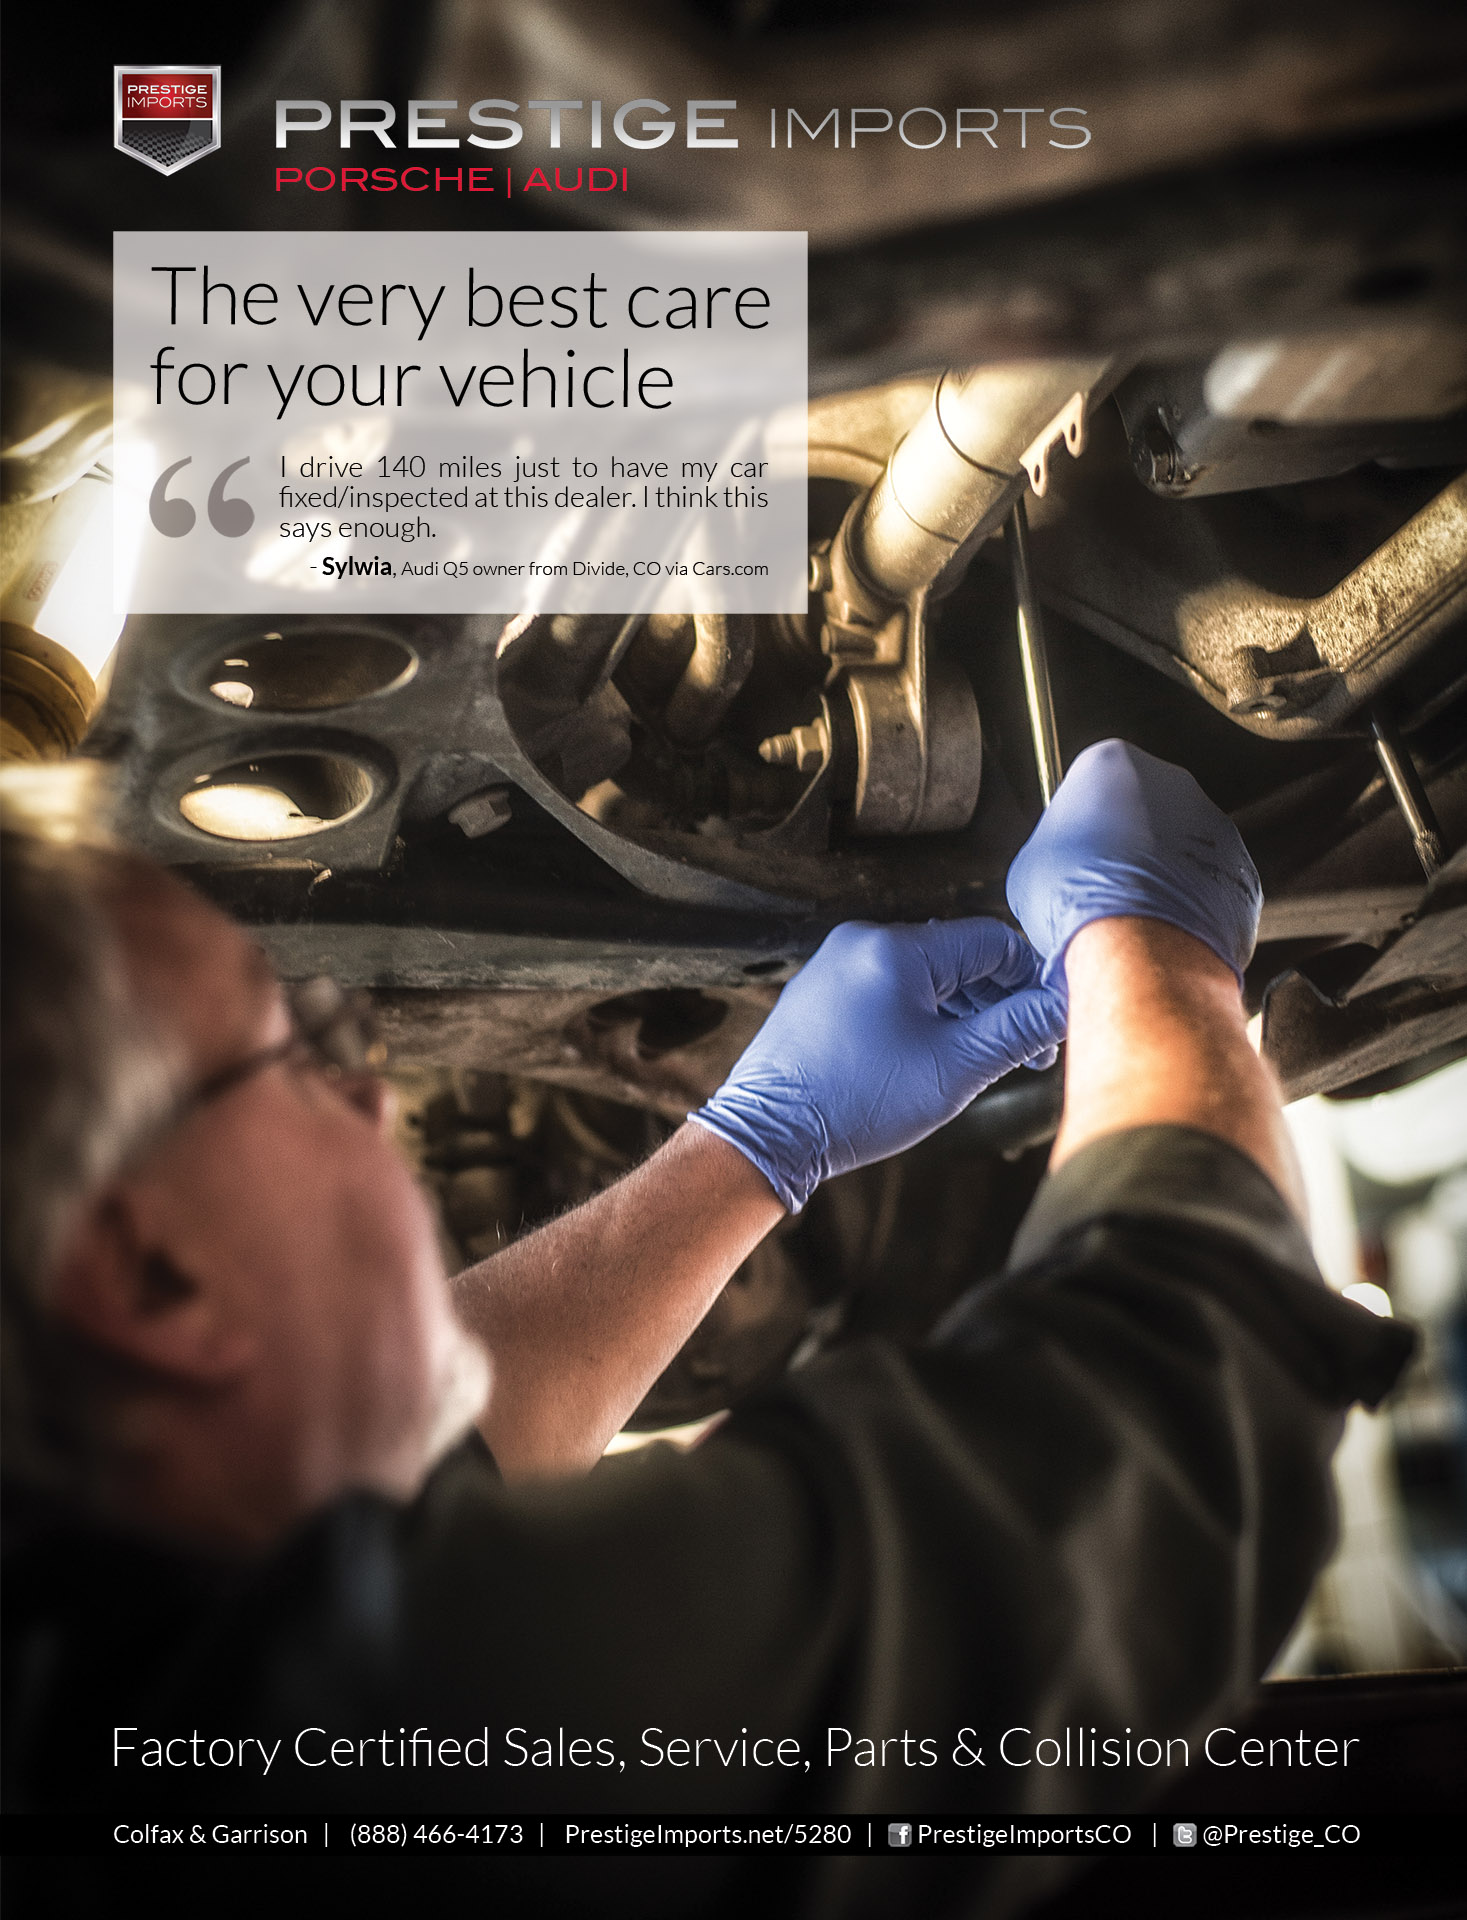 Audi Technician working on a vehicle as it sits on a lift in the Prestige Audi Service Center - Prestige Imports Print Ad - The very best care for your vehicle